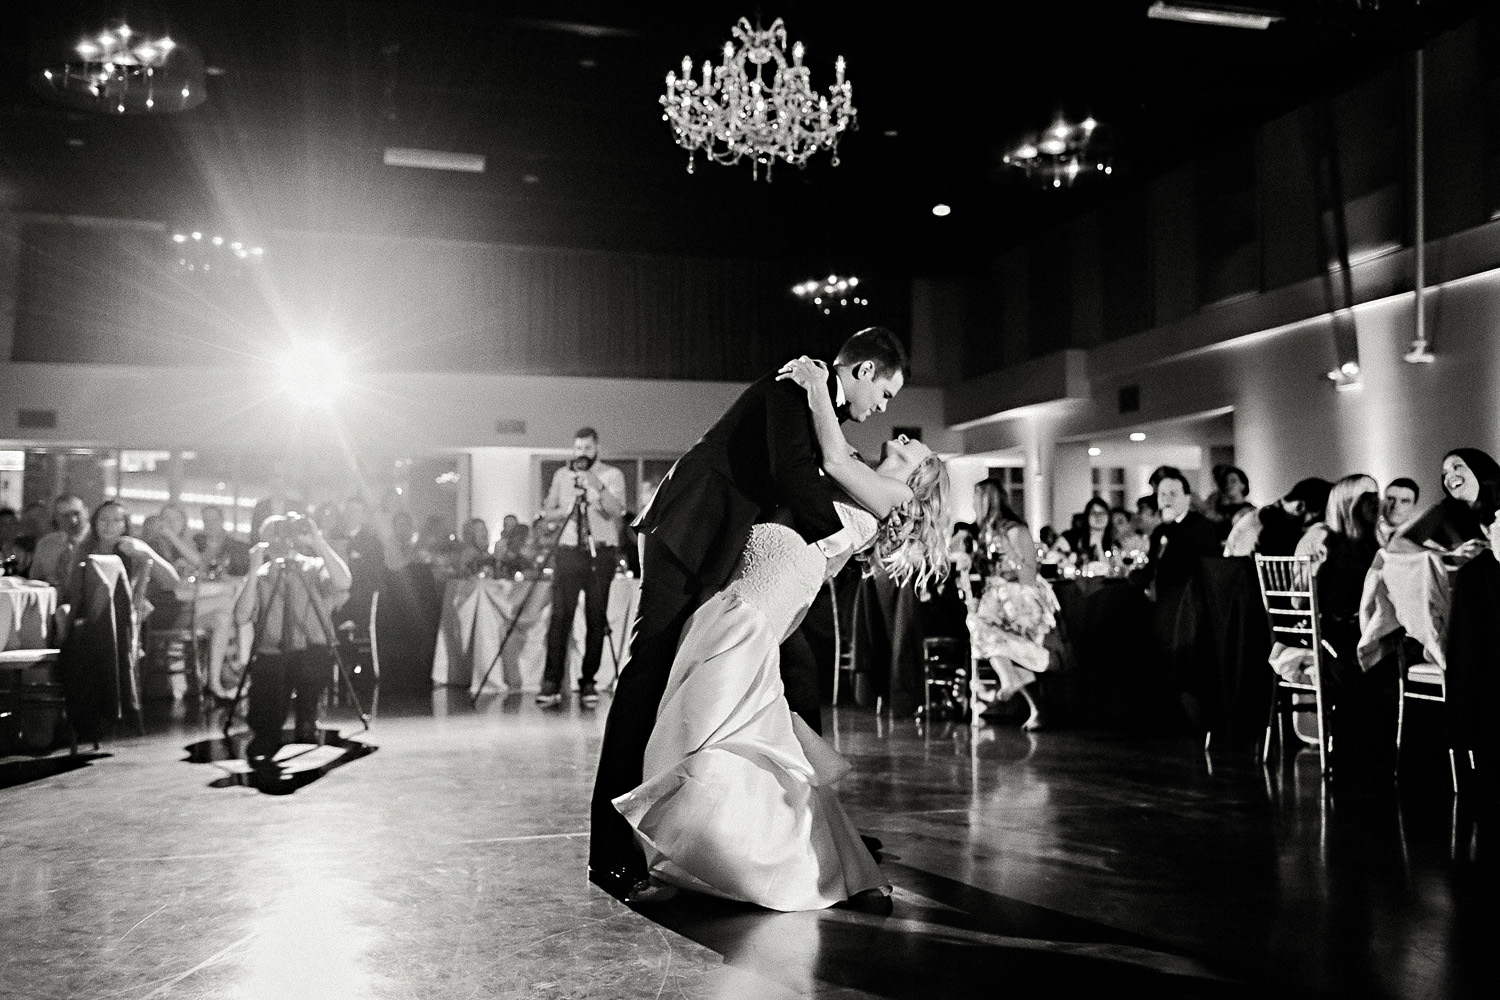 A bride and groom share their first dance.